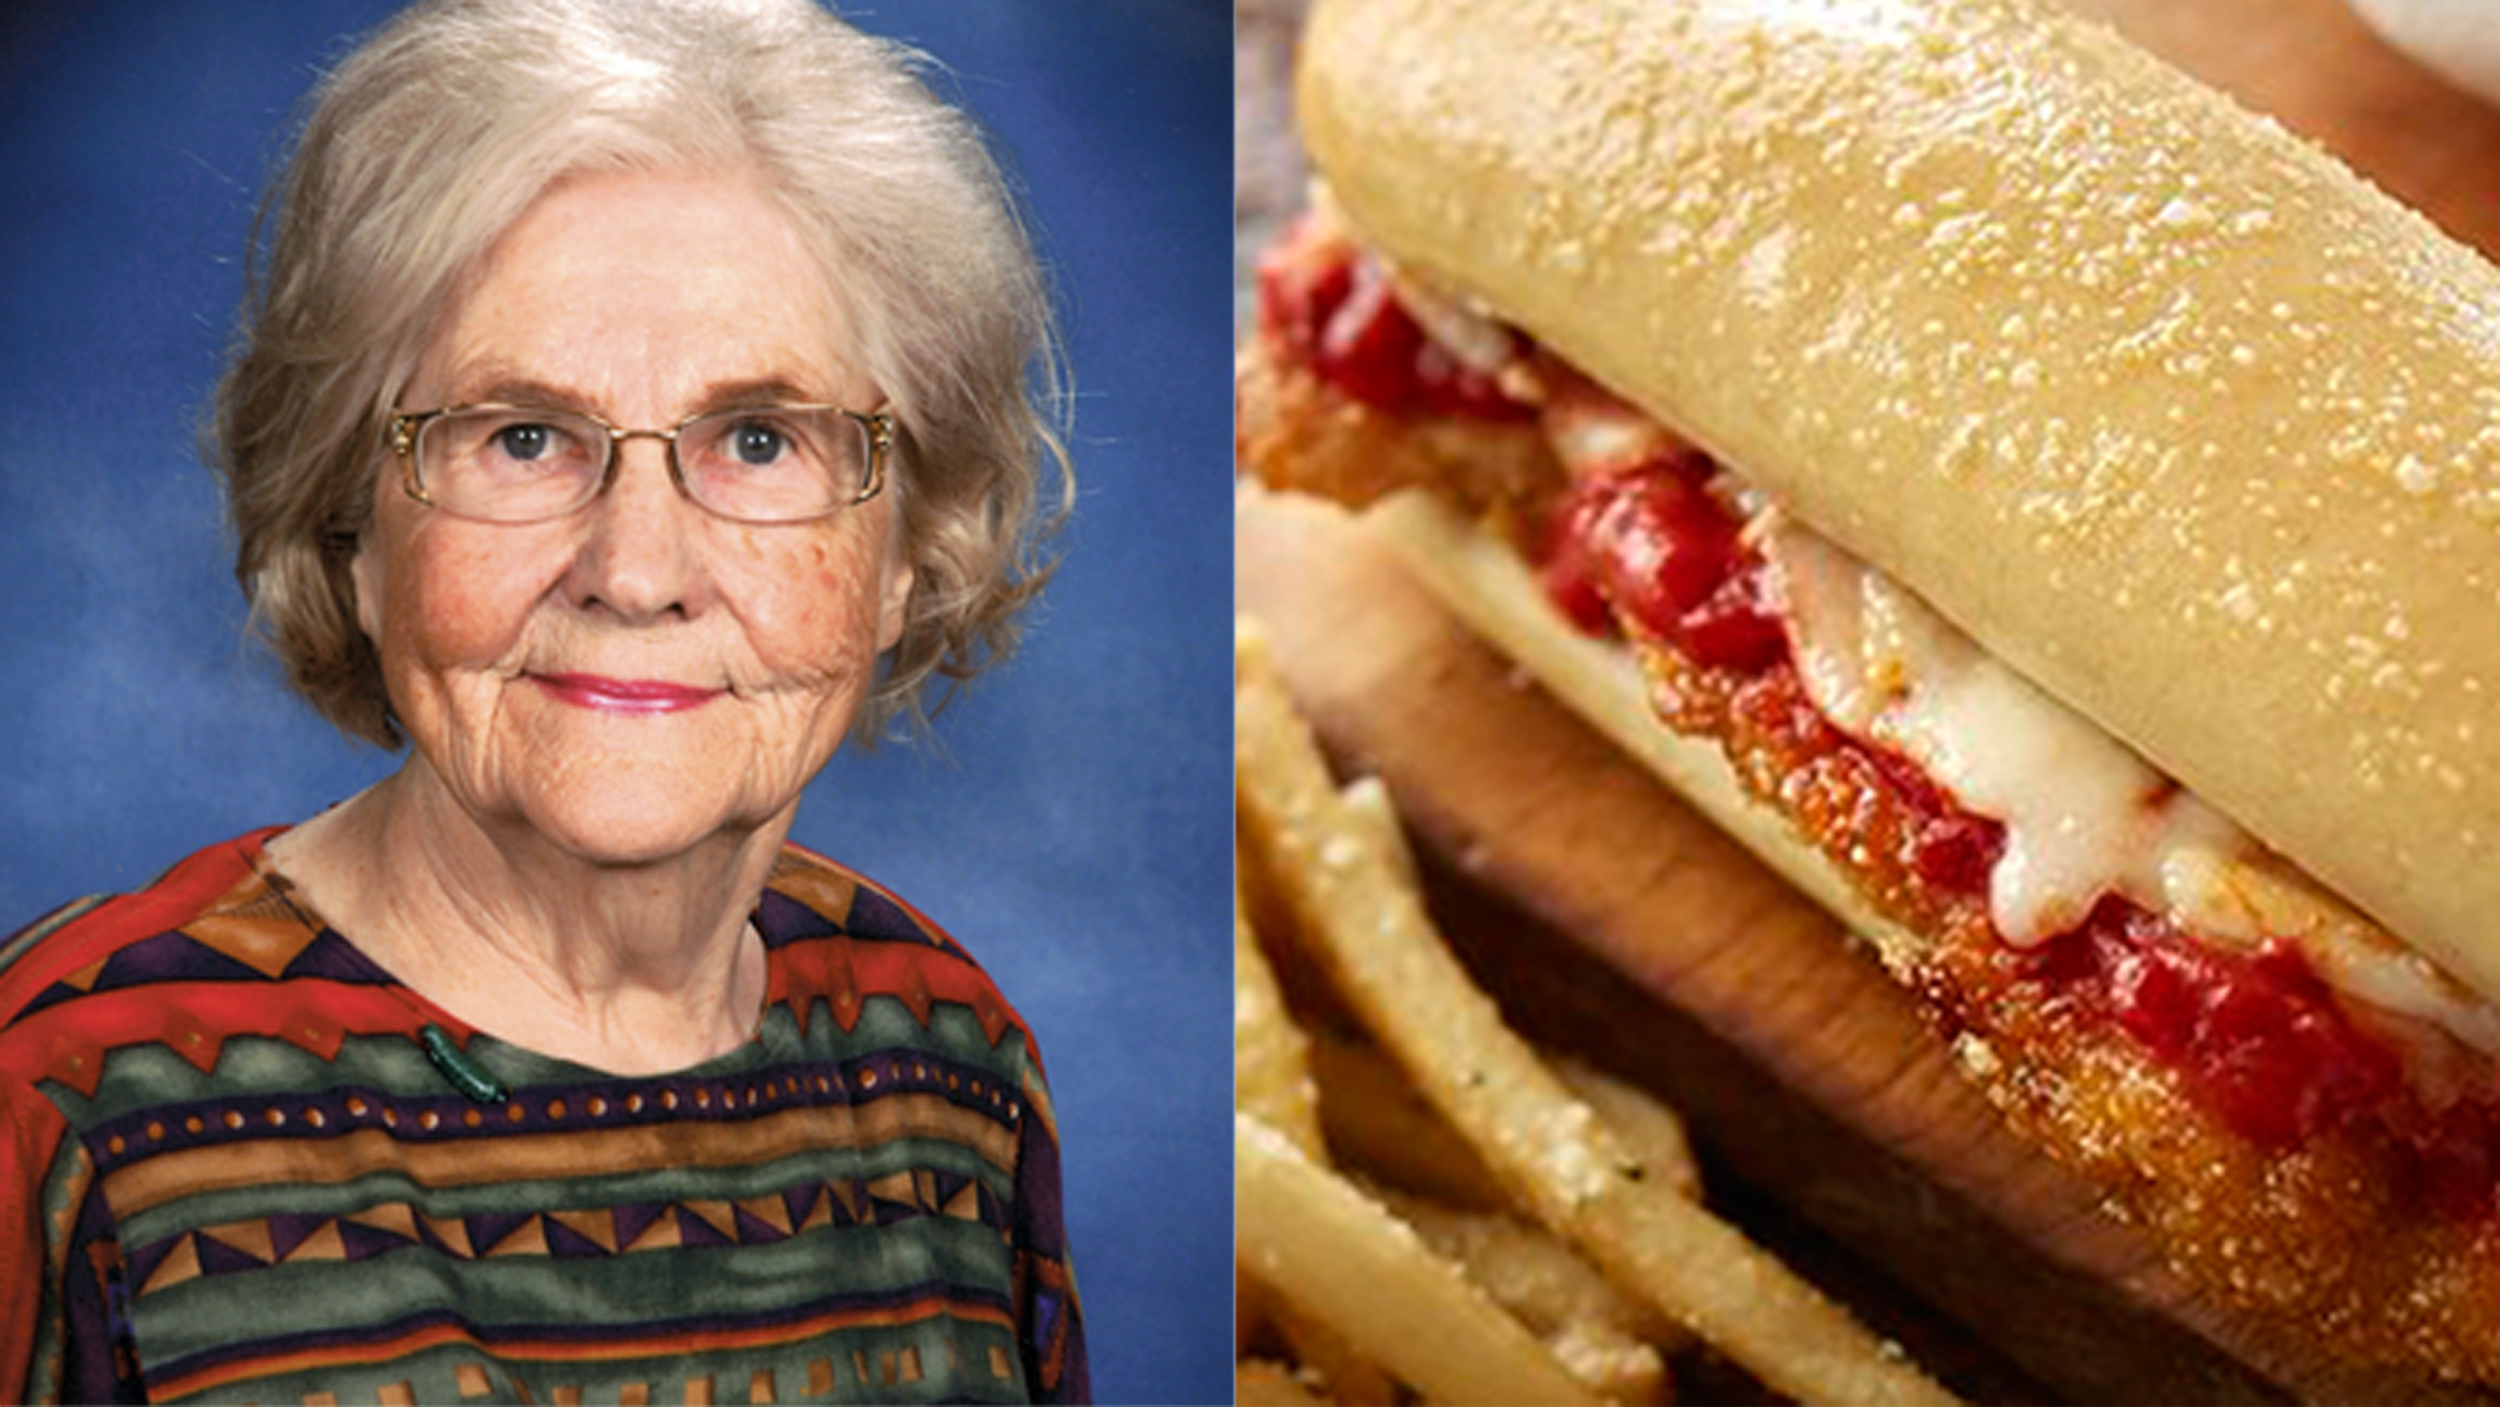 marilyn hagerty reviews olive gardens breadstick sandwiches - Olive Garden Breadstick Sandwich